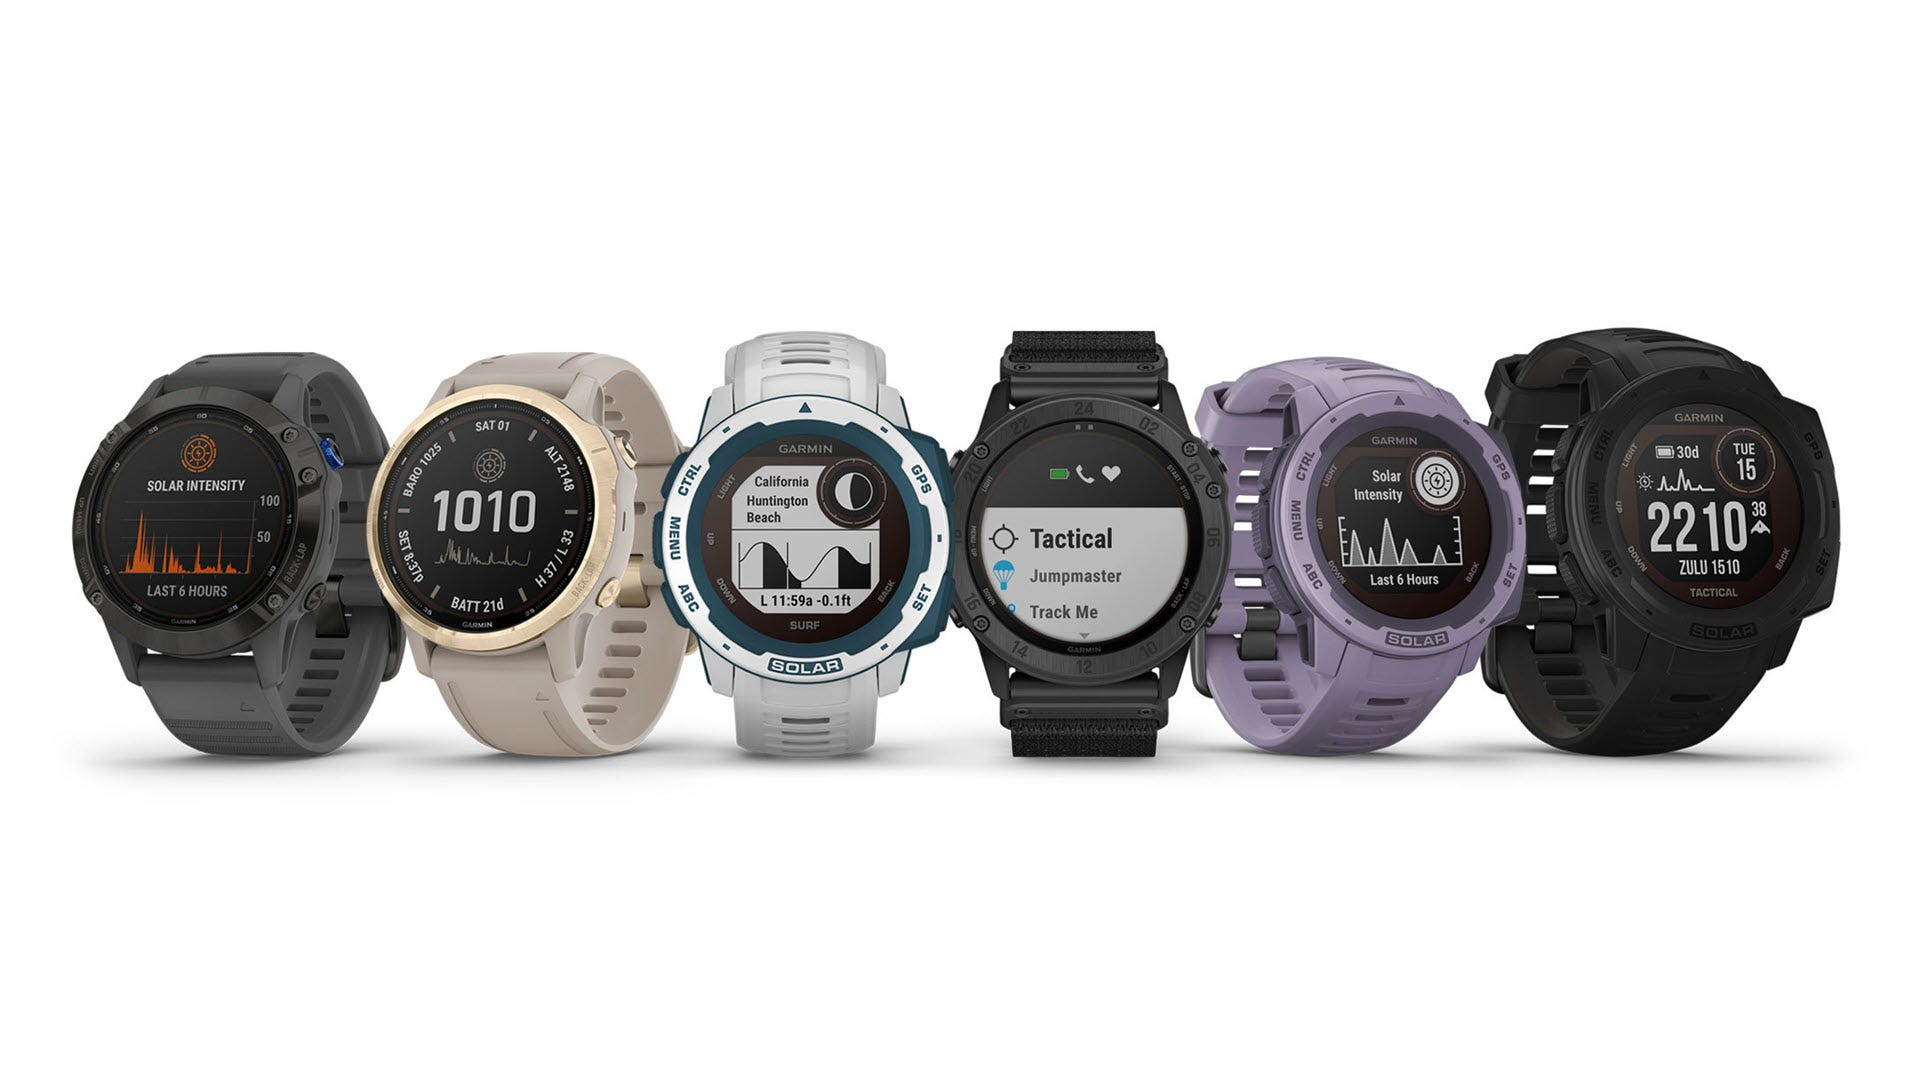 The entire Garmin solar powered smartwach lineup, side by side.